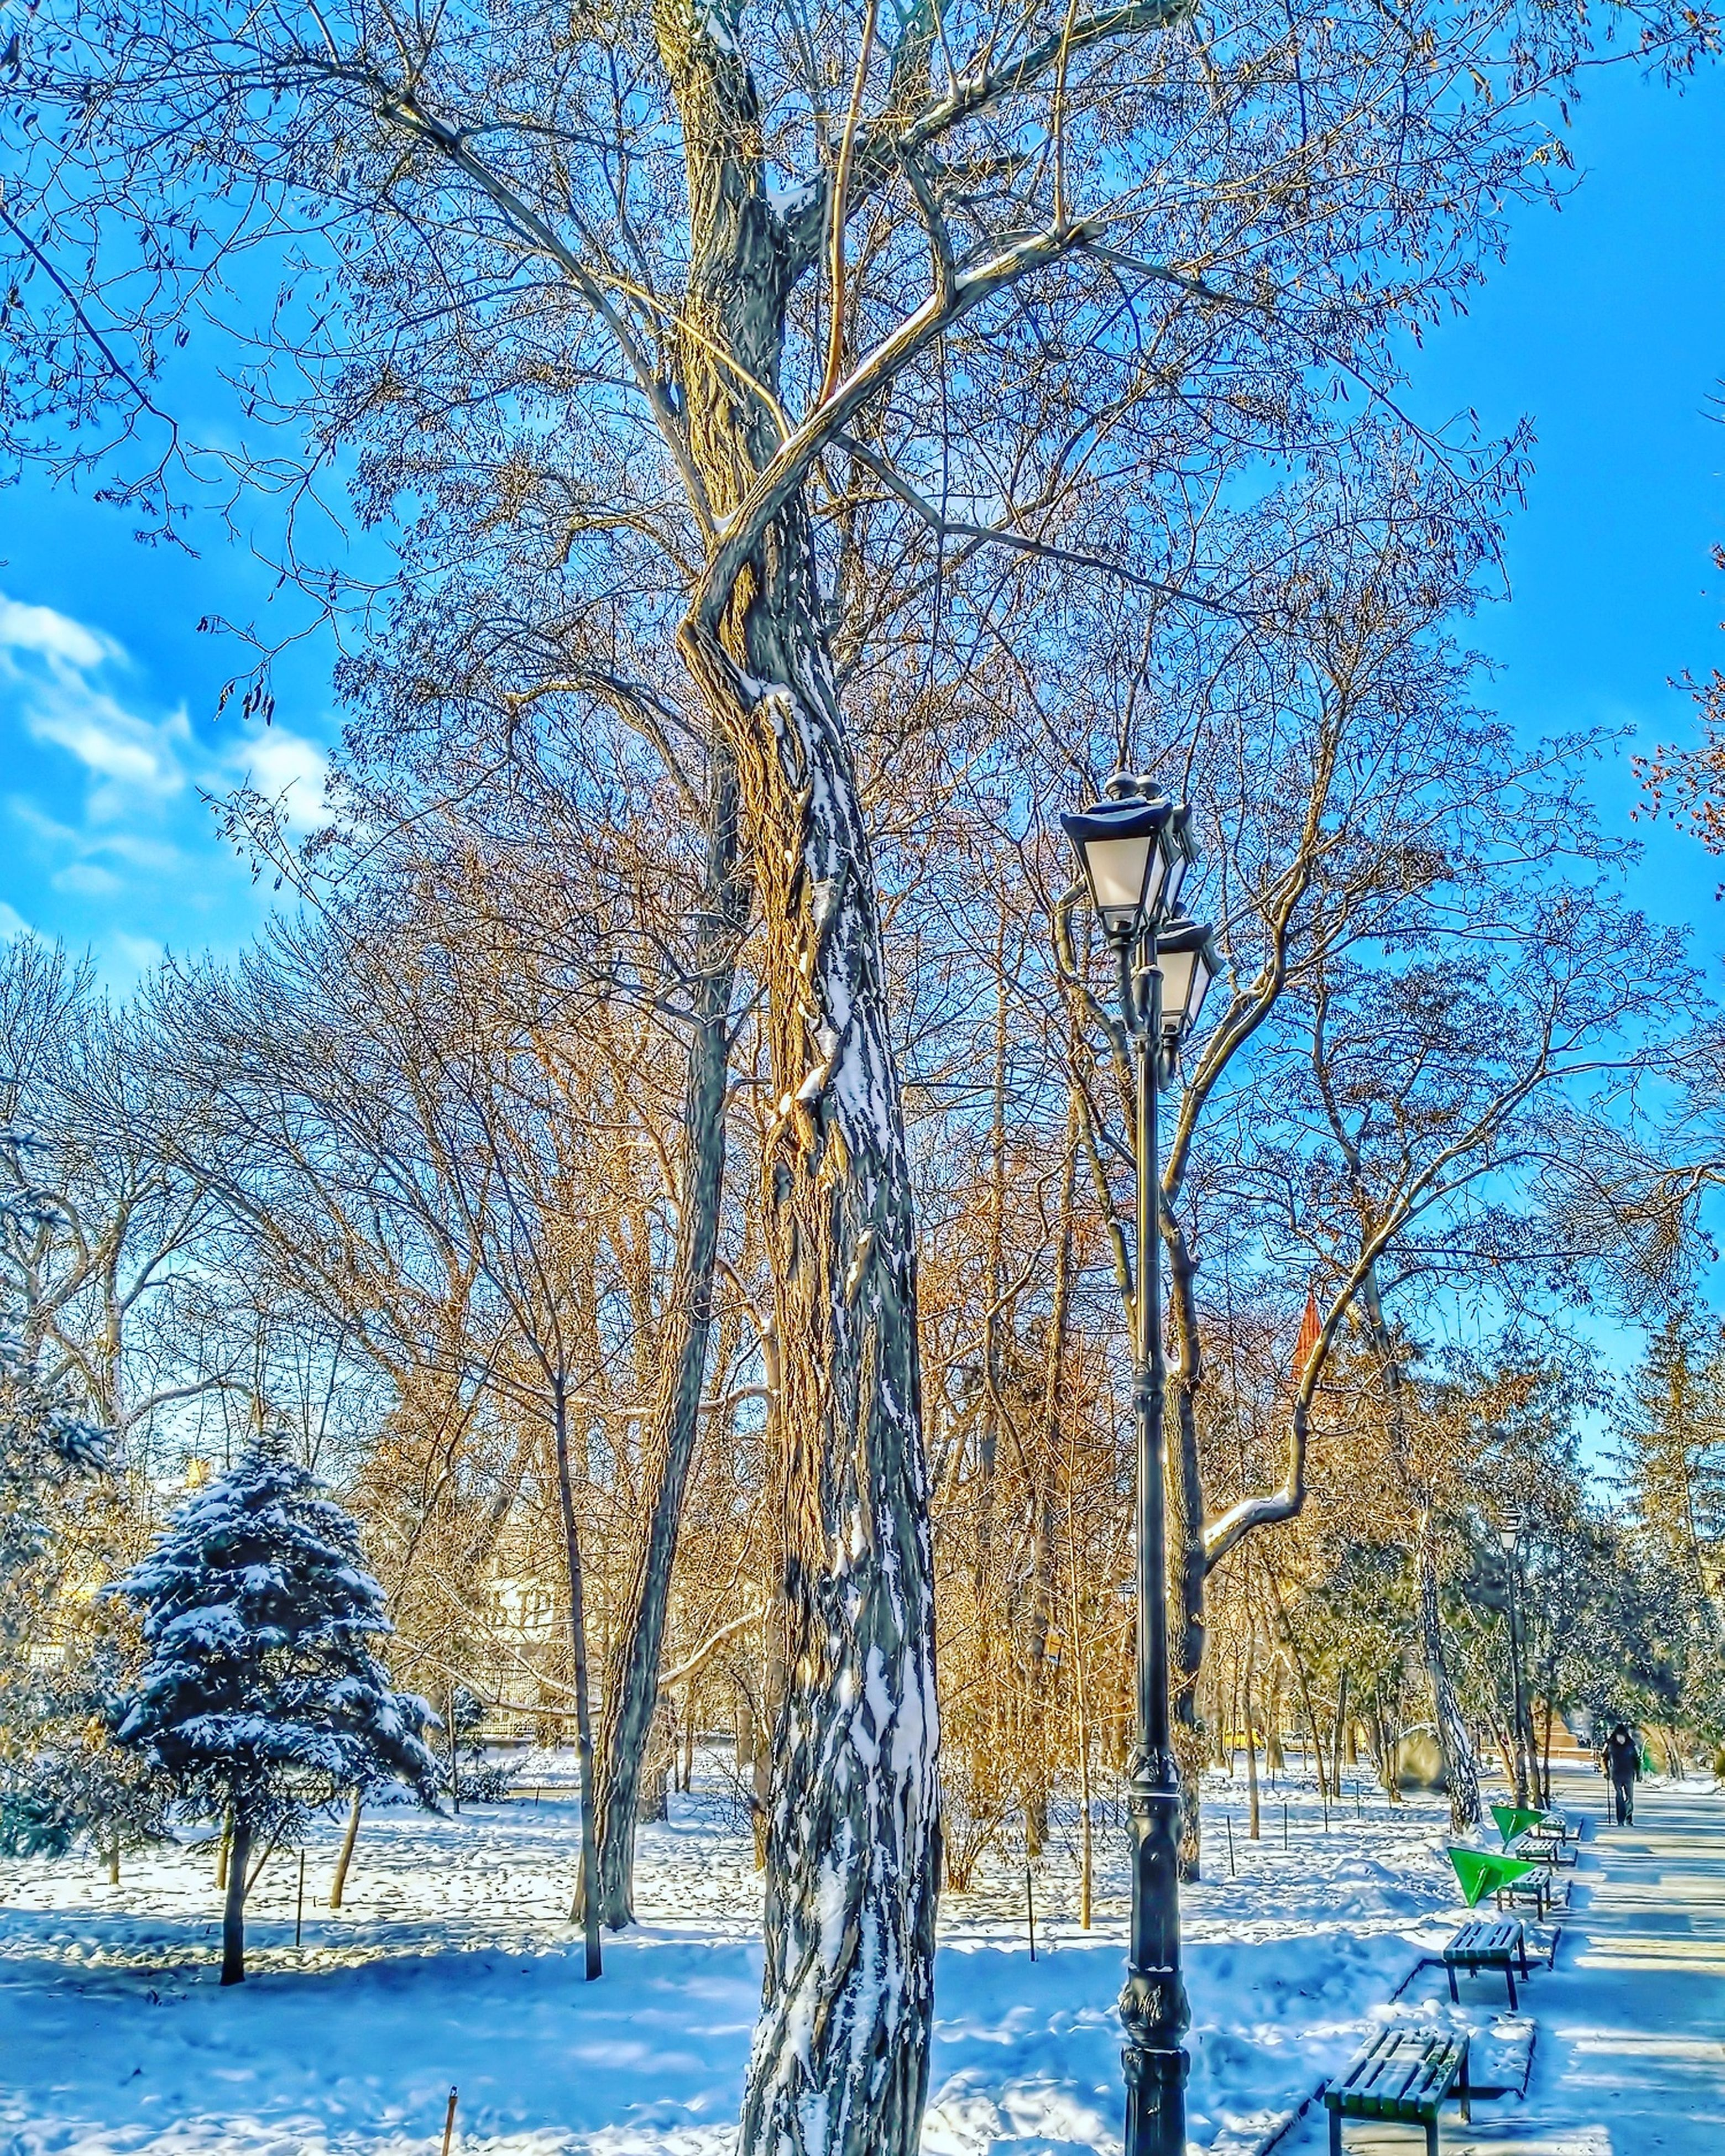 tree, sky, blue, nature, beauty in nature, no people, outdoors, day, scenics, low angle view, cold temperature, water, close-up